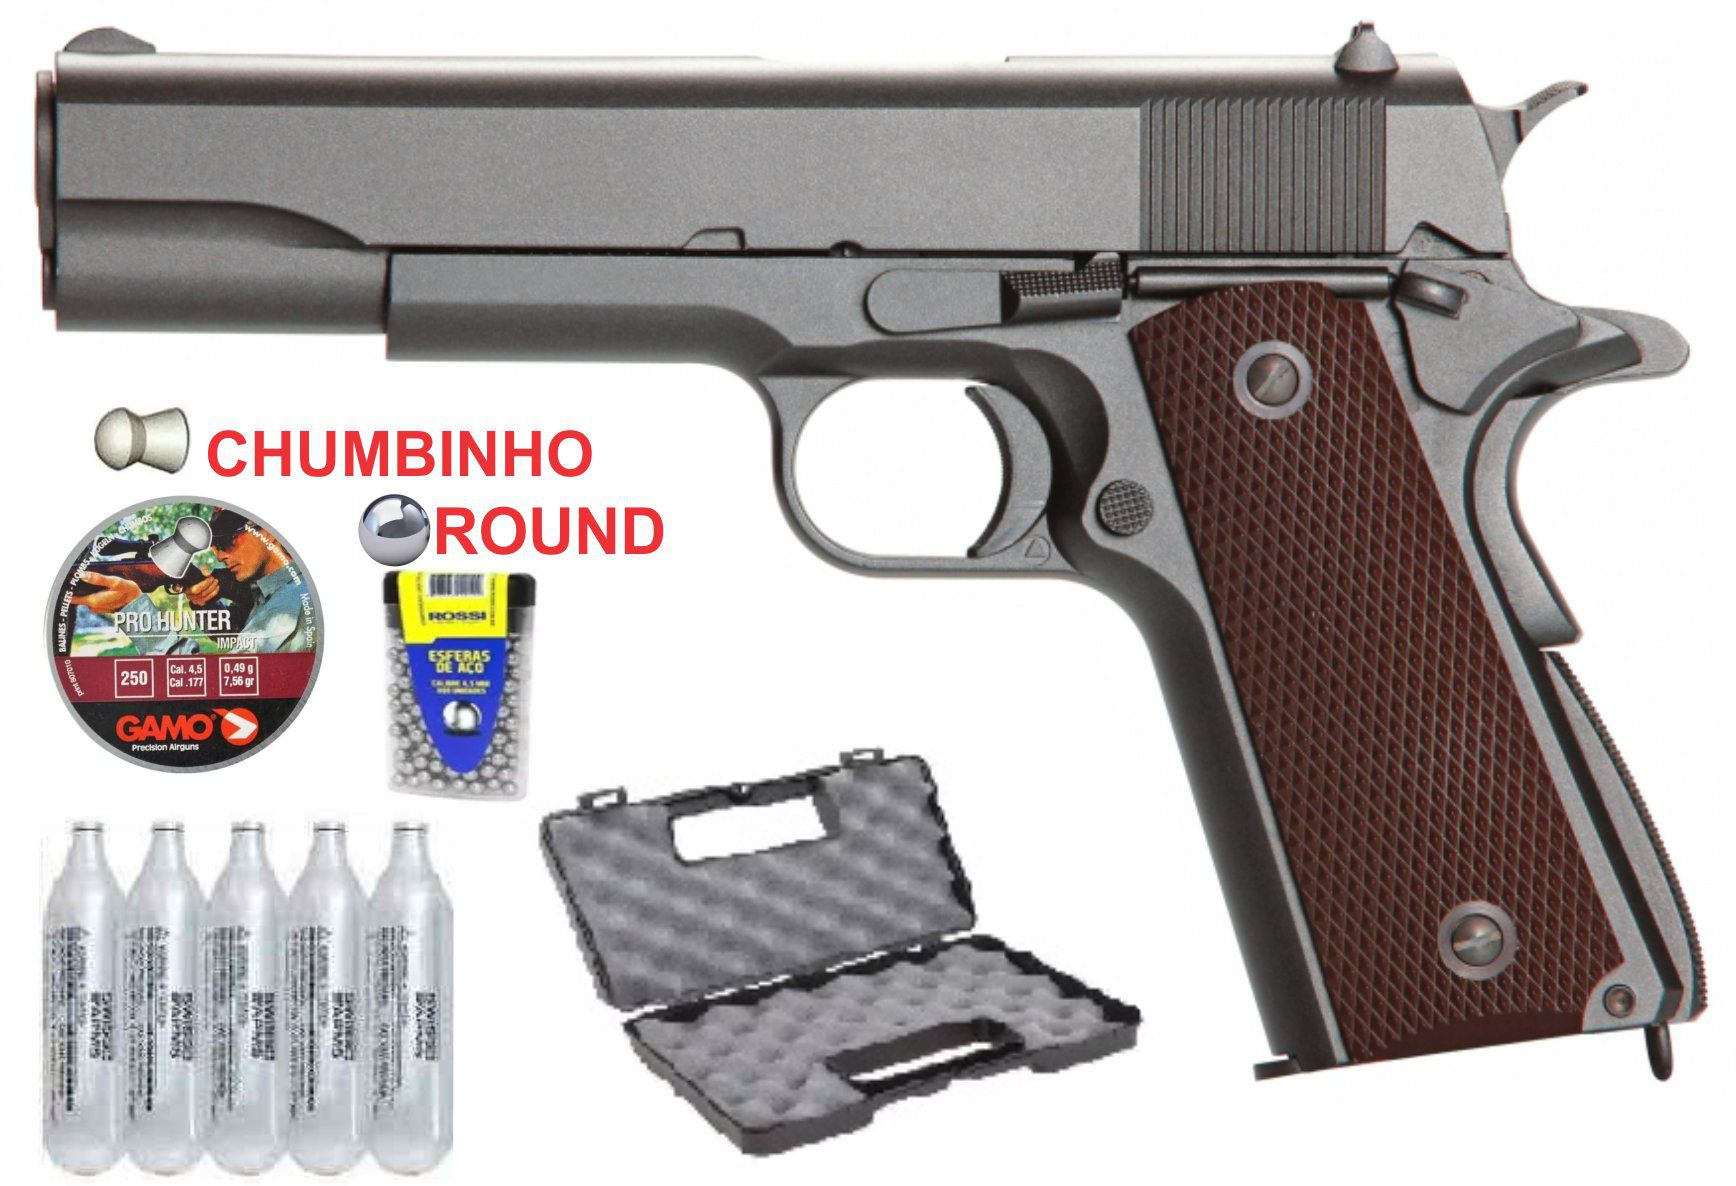 Pistola 1911 full metal 4,5mm chumbinho e esferas metalicas